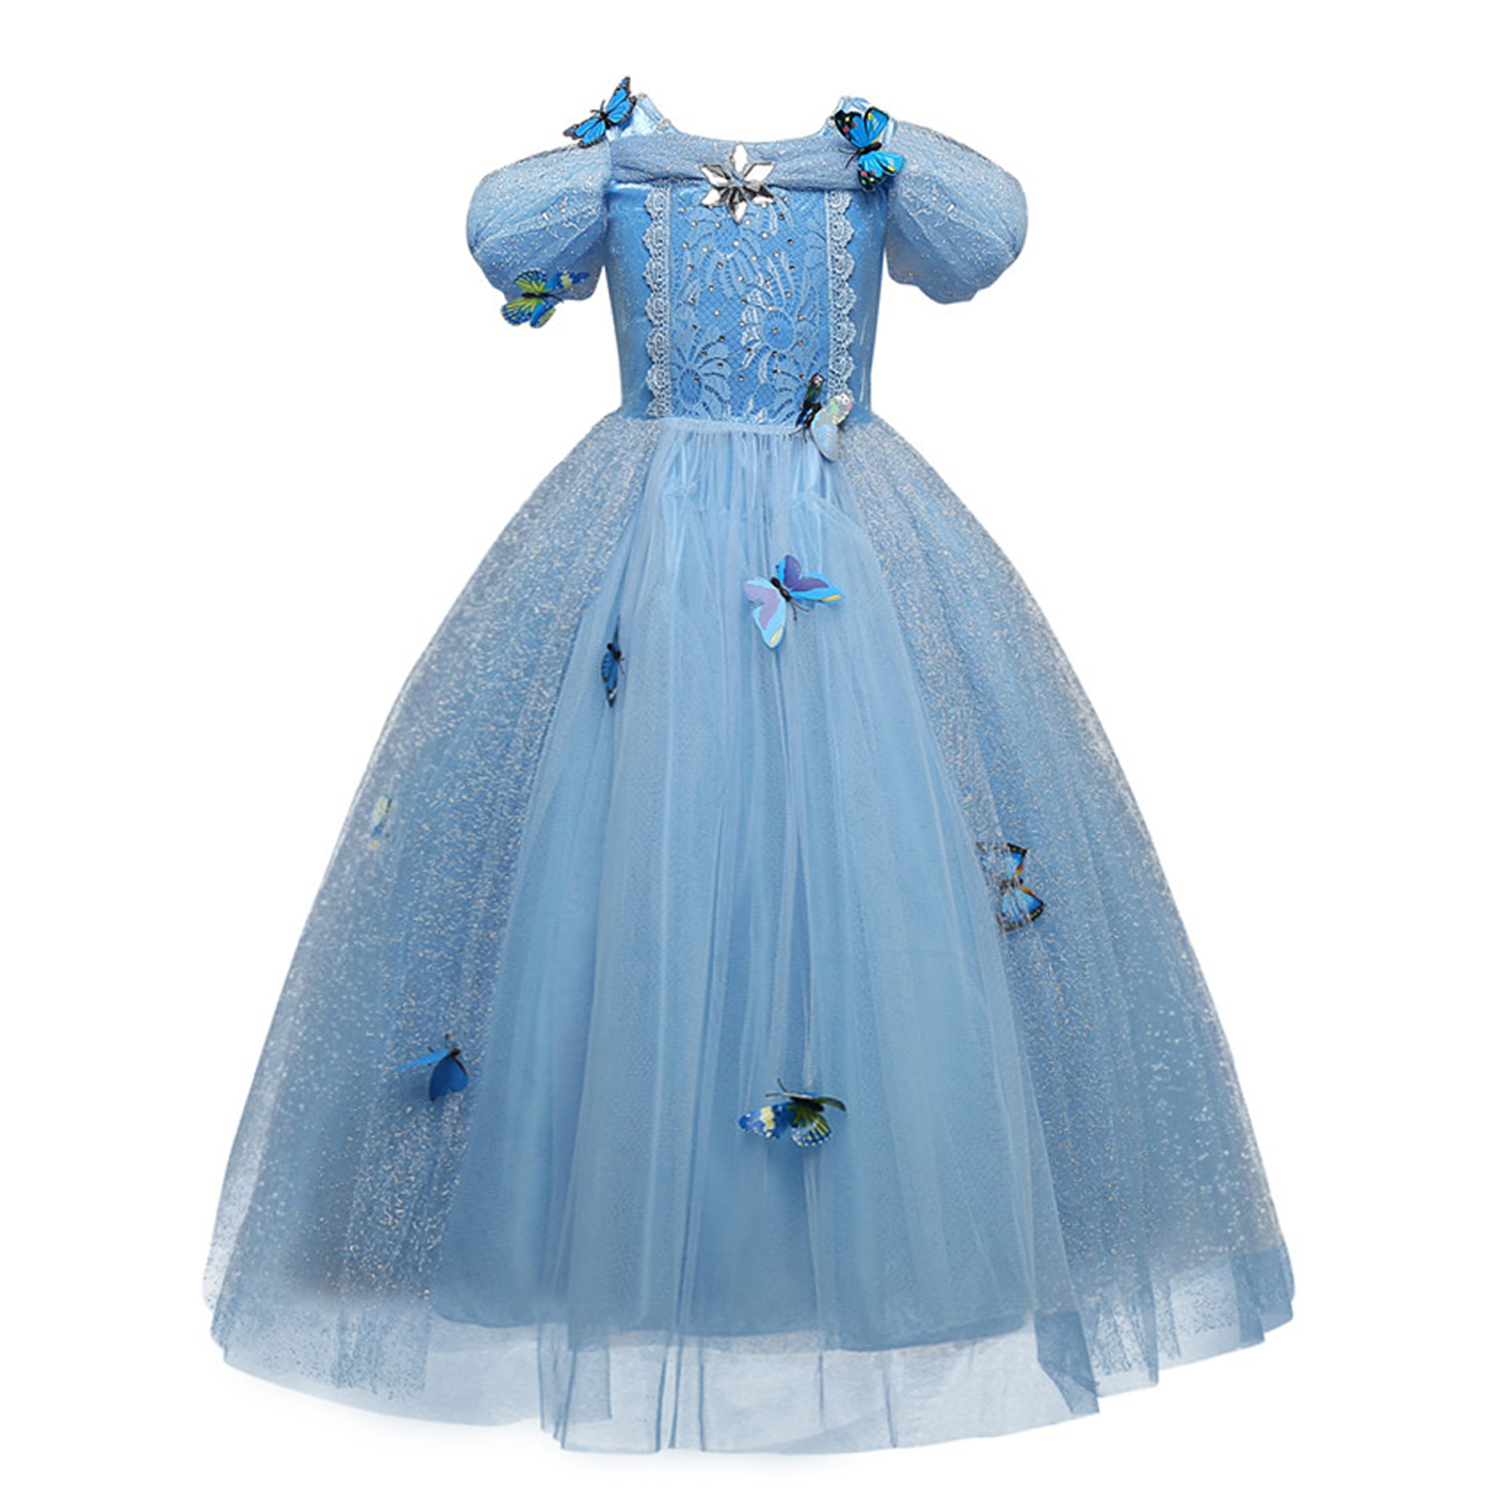 Girls Princess Dress Halloween Costume Birthday Party Clothing for Children Kids Vestidos Robe Fille Girls Fancy Dress 7